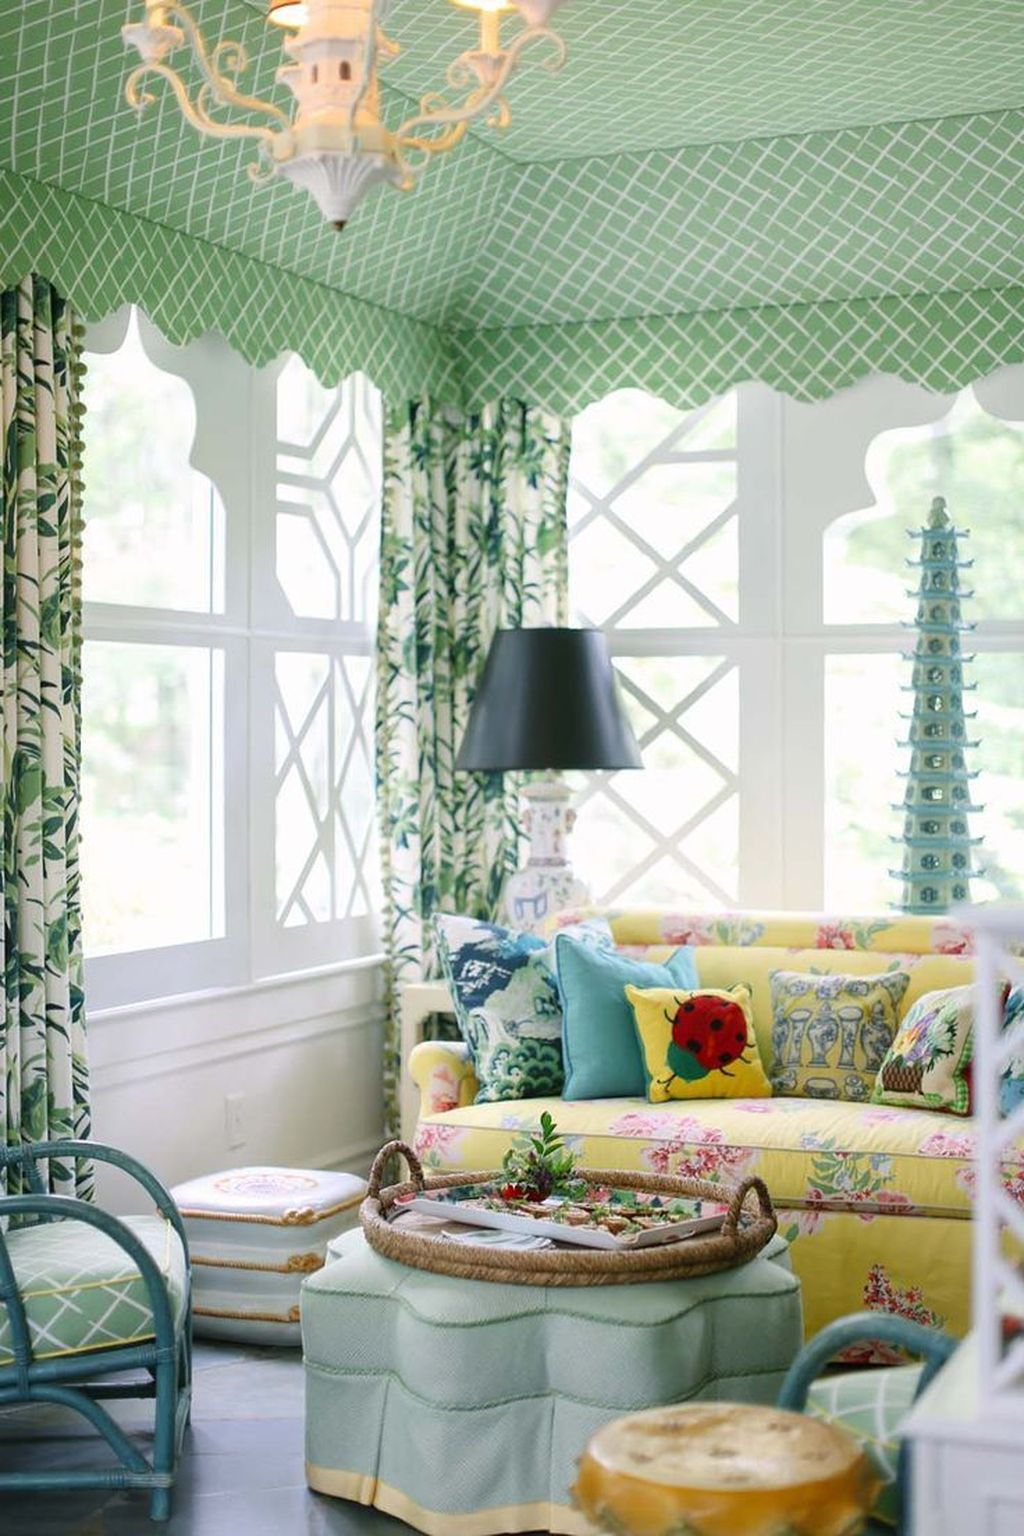 Best Summer Interior Design Ideas To Beautify Your Home 04